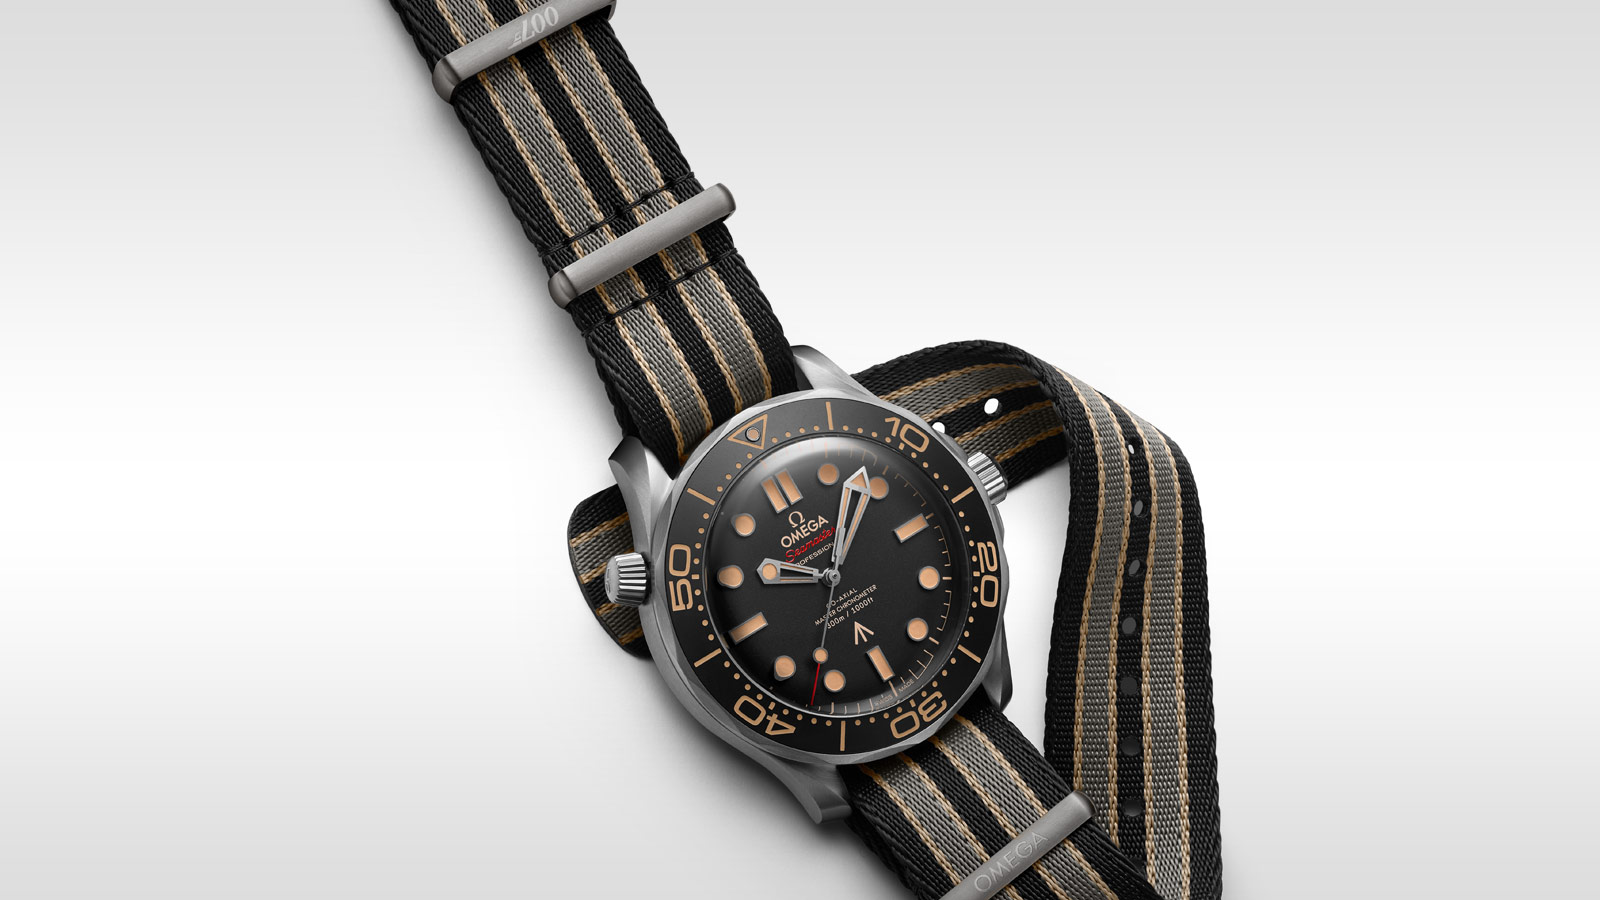 Seamaster Diver 300 M Diver 300M Omega Co‑Axial Master Chronometer 42 mm - 210.92.42.20.01.001 - Ver 1